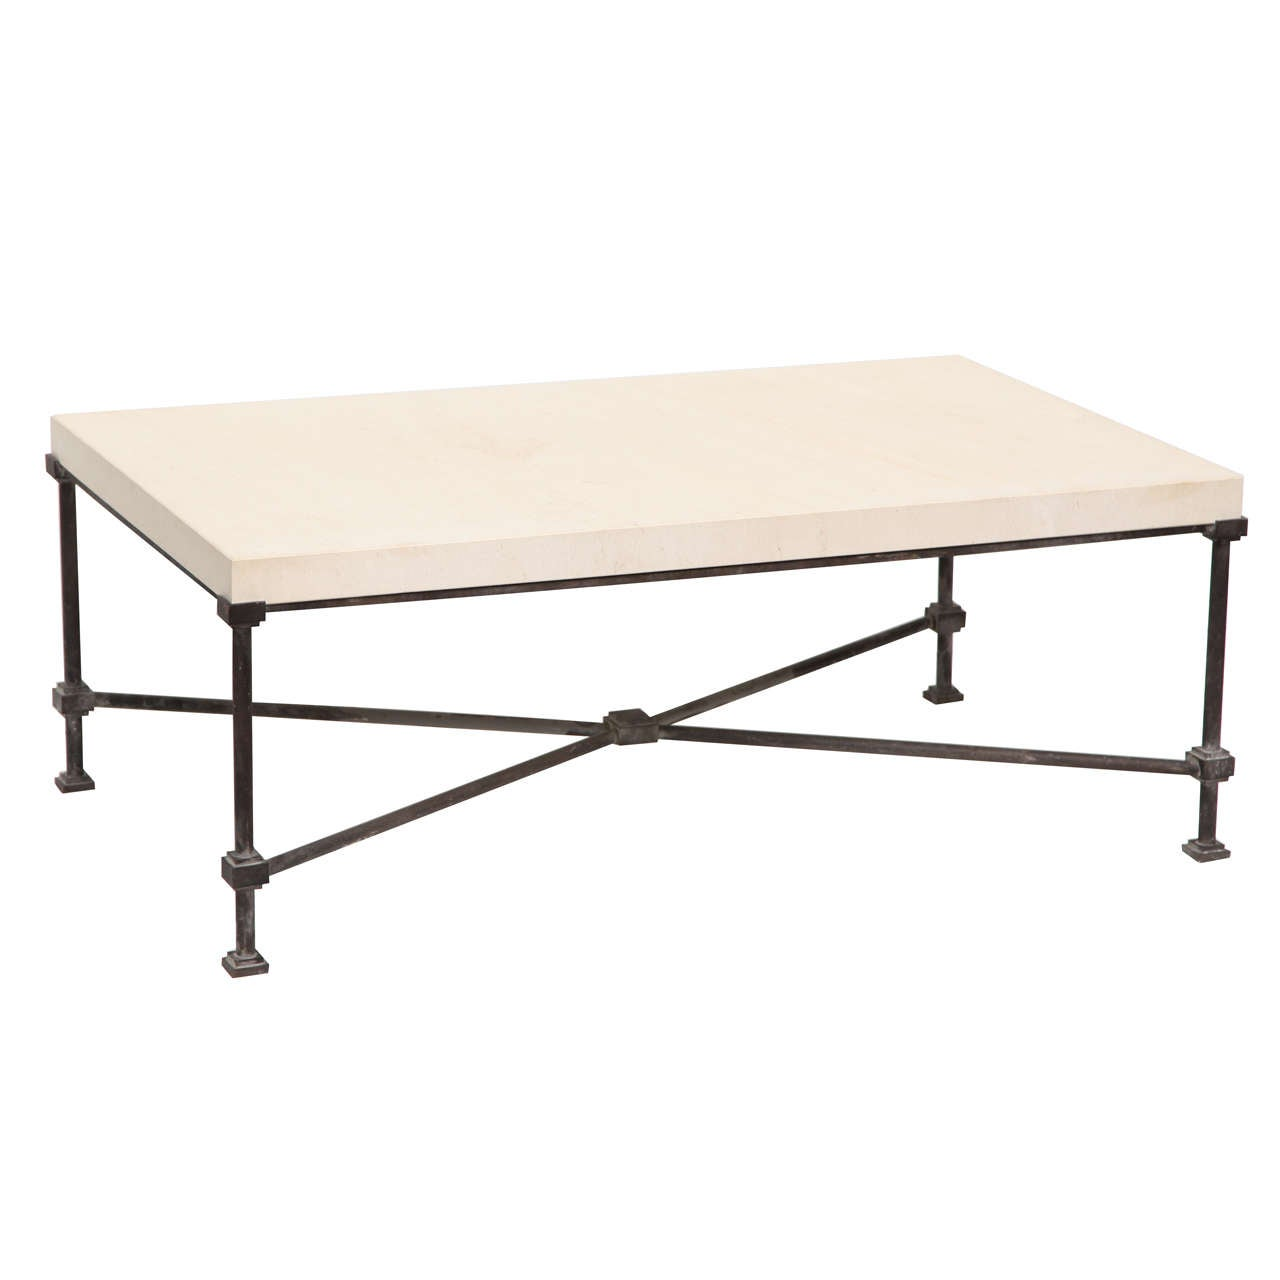 Charming Limestone Top Coffee Table With Metal Base 1